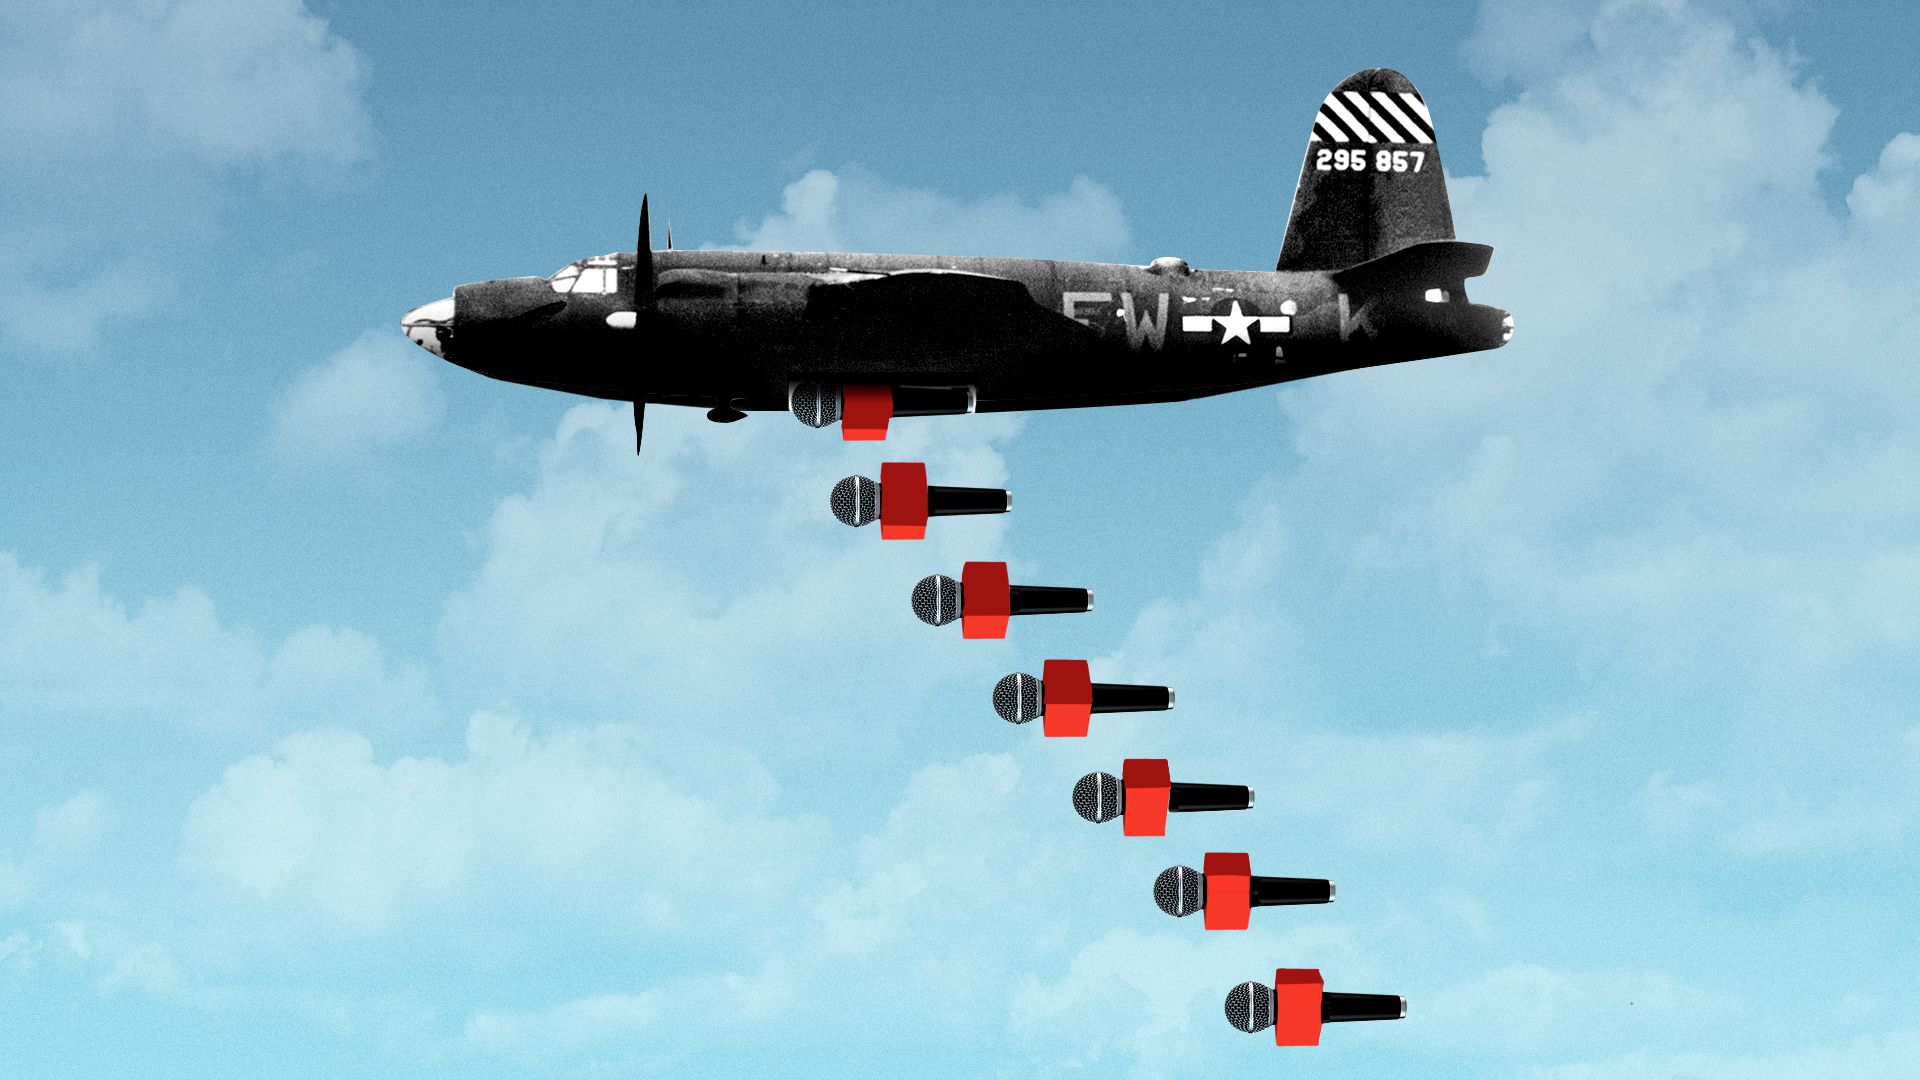 Illustration of a bomber plane with TV microphones falling out of the bomb hatch